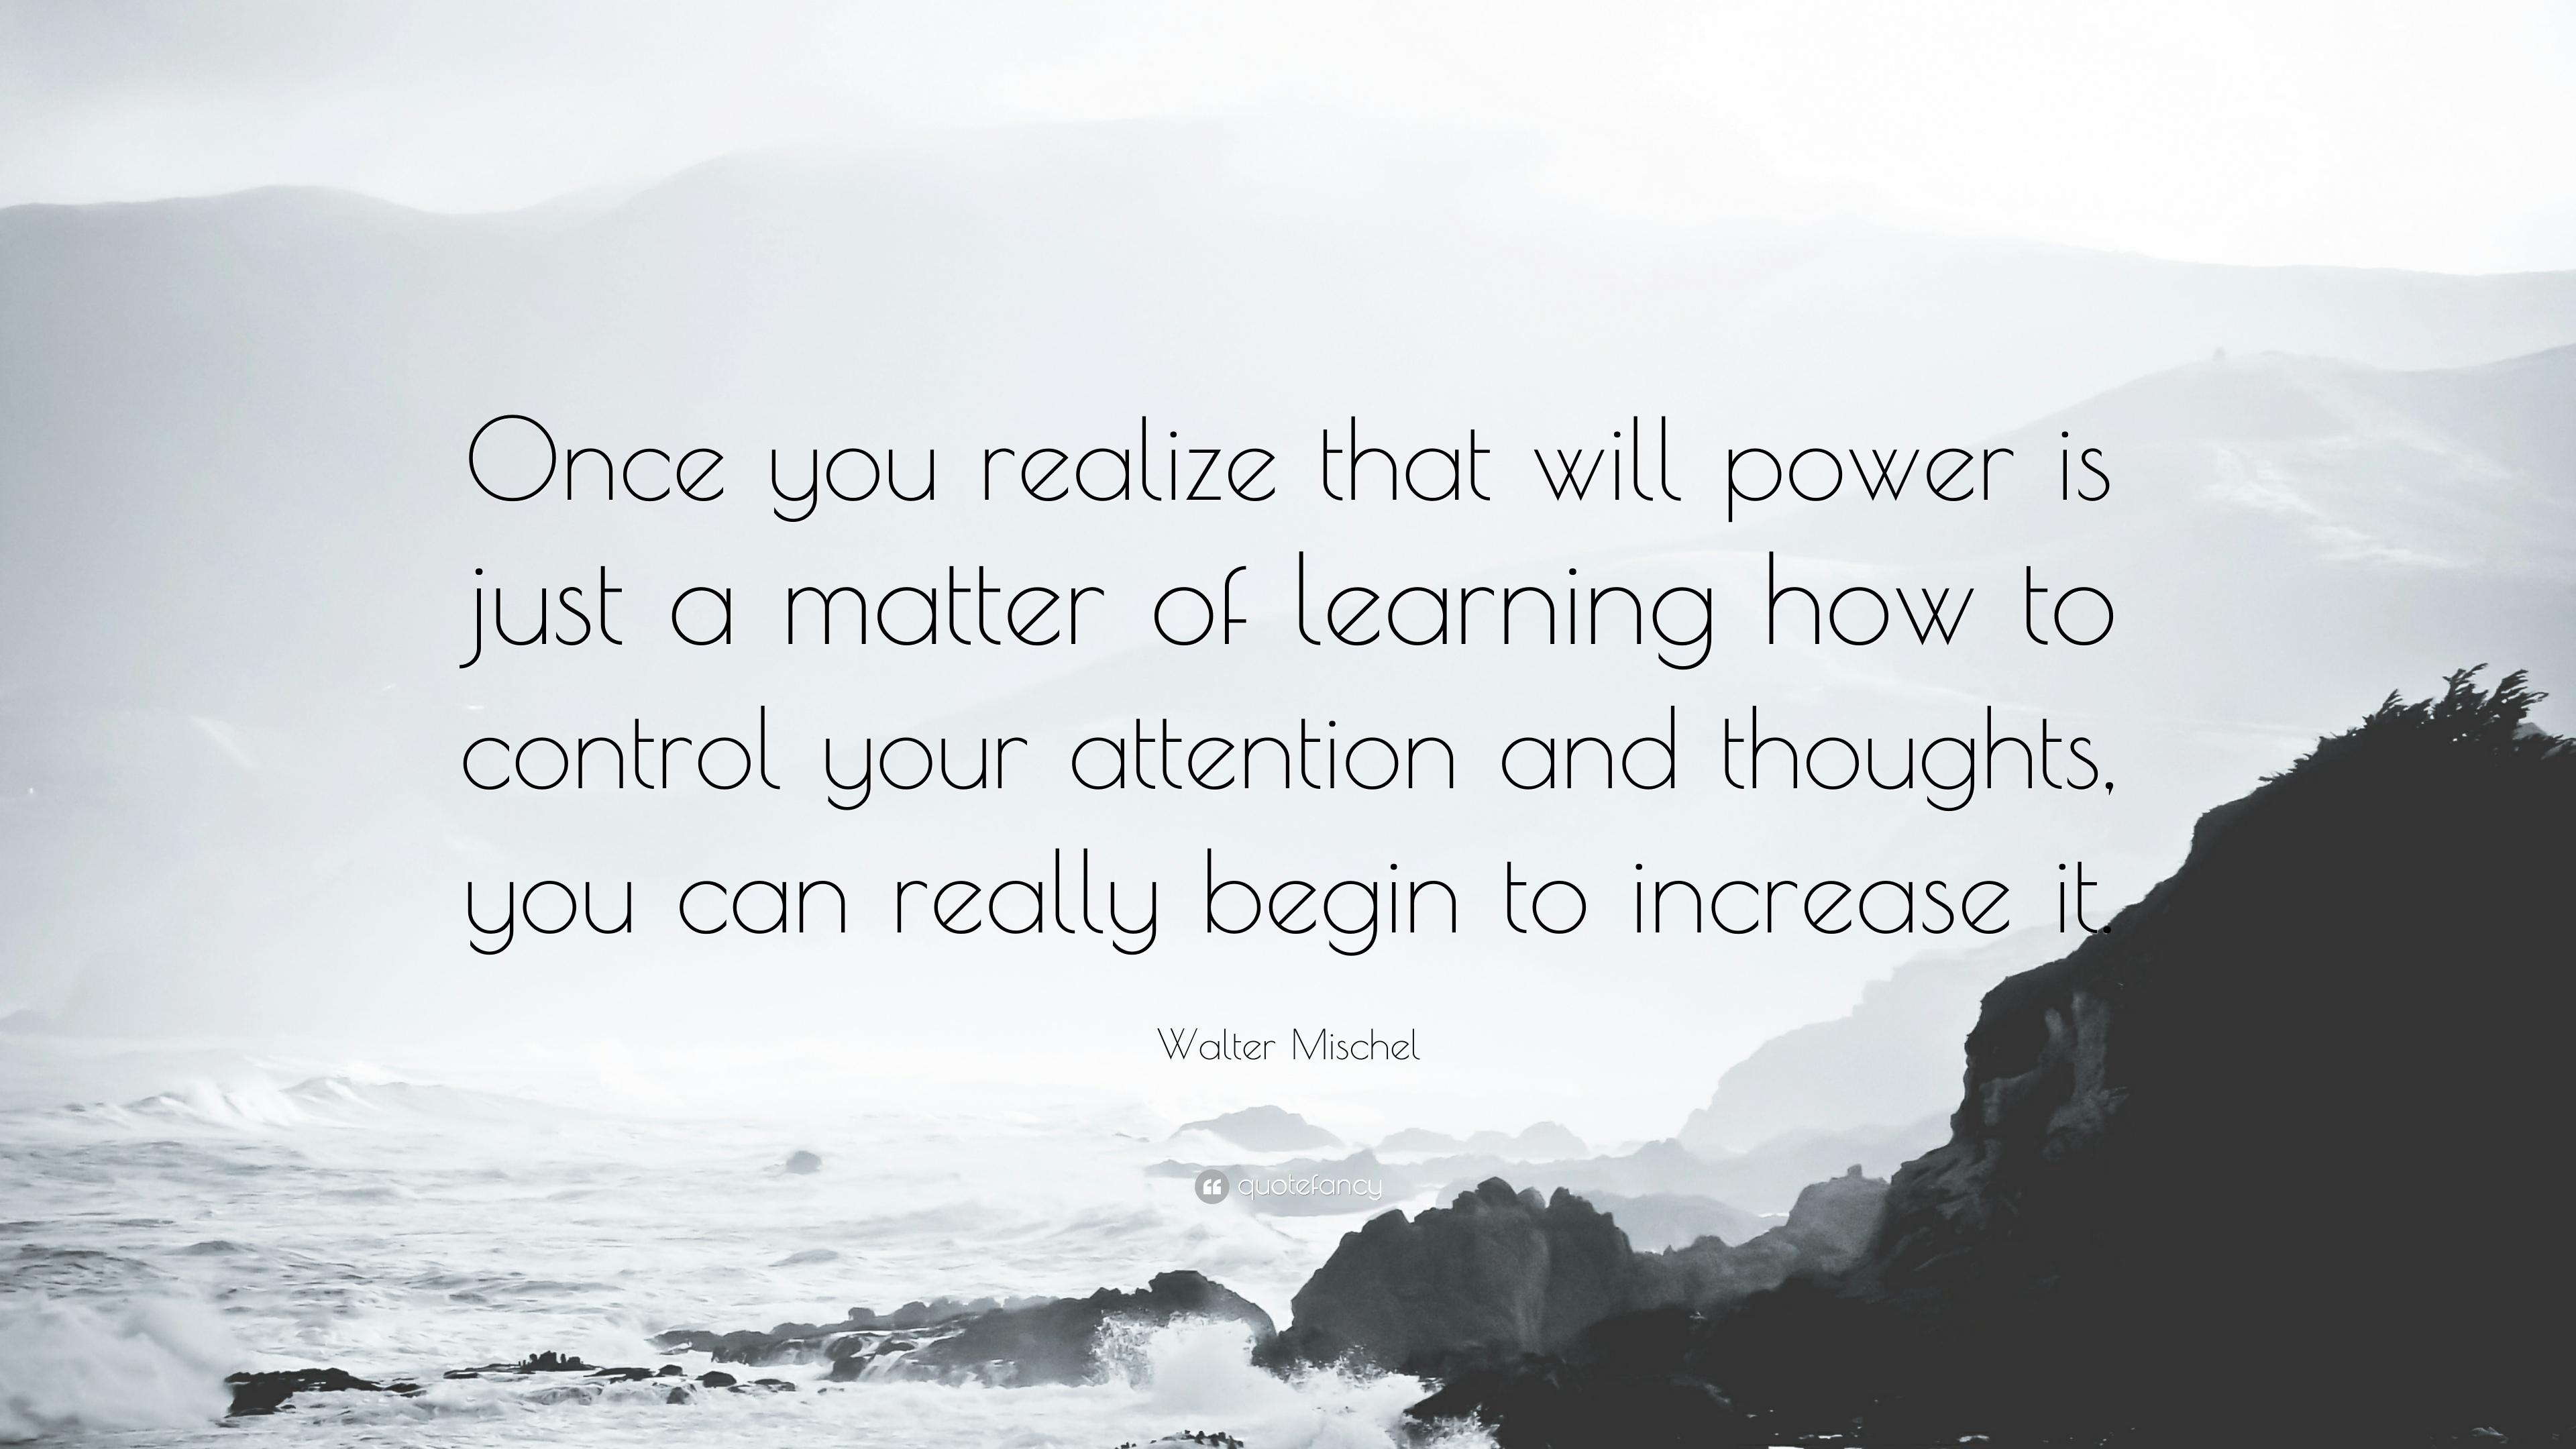 Does the power of thought really